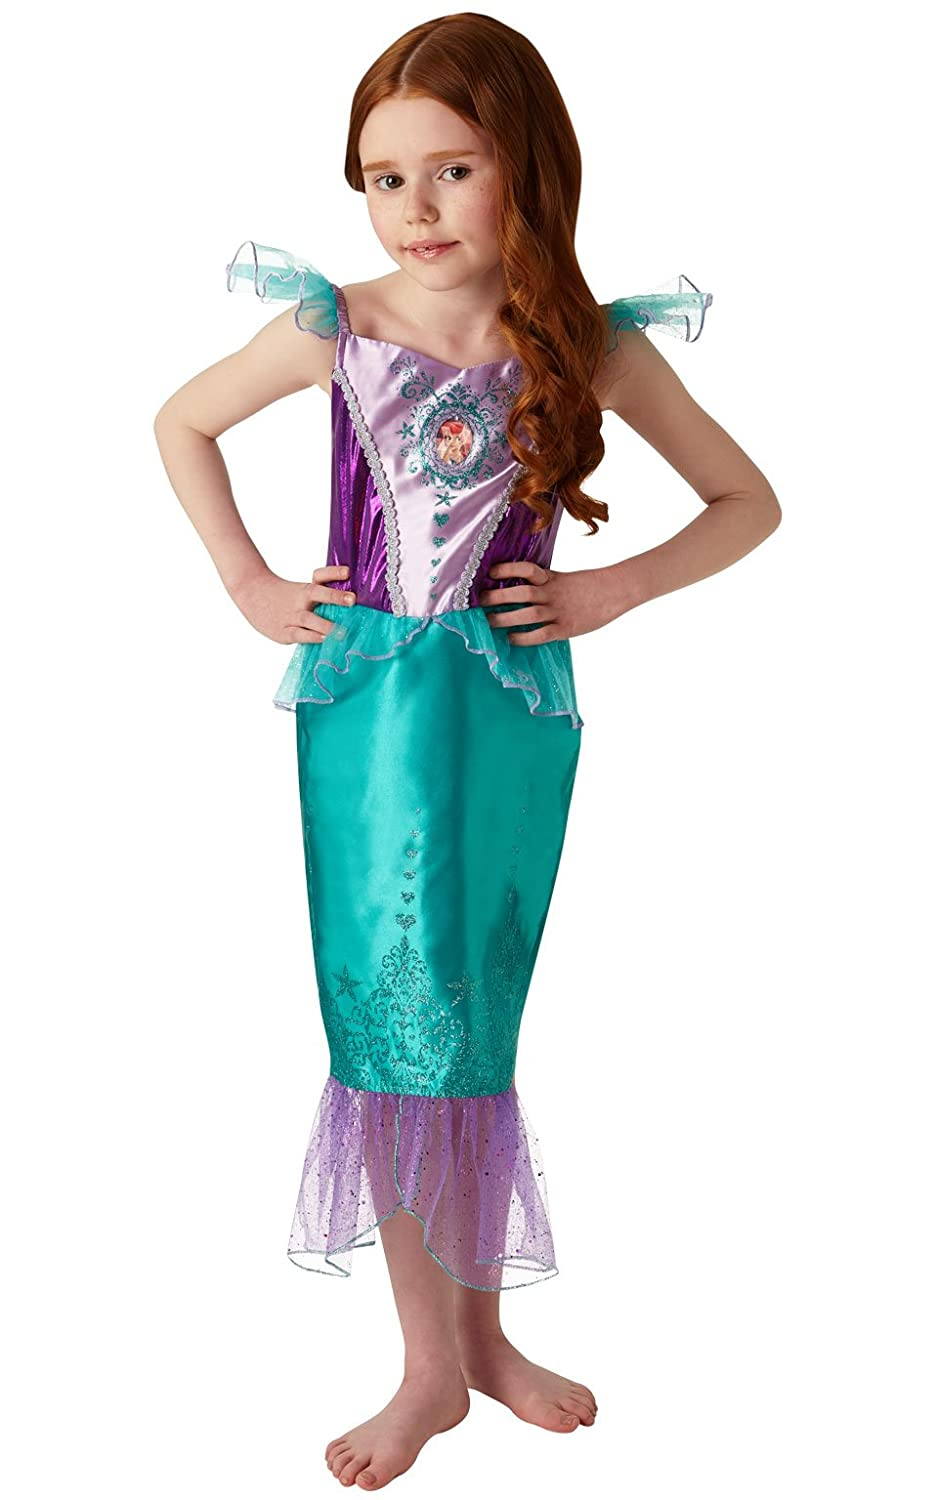 b1ebda371 Rubie's 640716S Official Disney Princess Ariel Gem Costume, Girls, Small 3-4  Years, Height 104 cm: Amazon.co.uk: Toys & Games